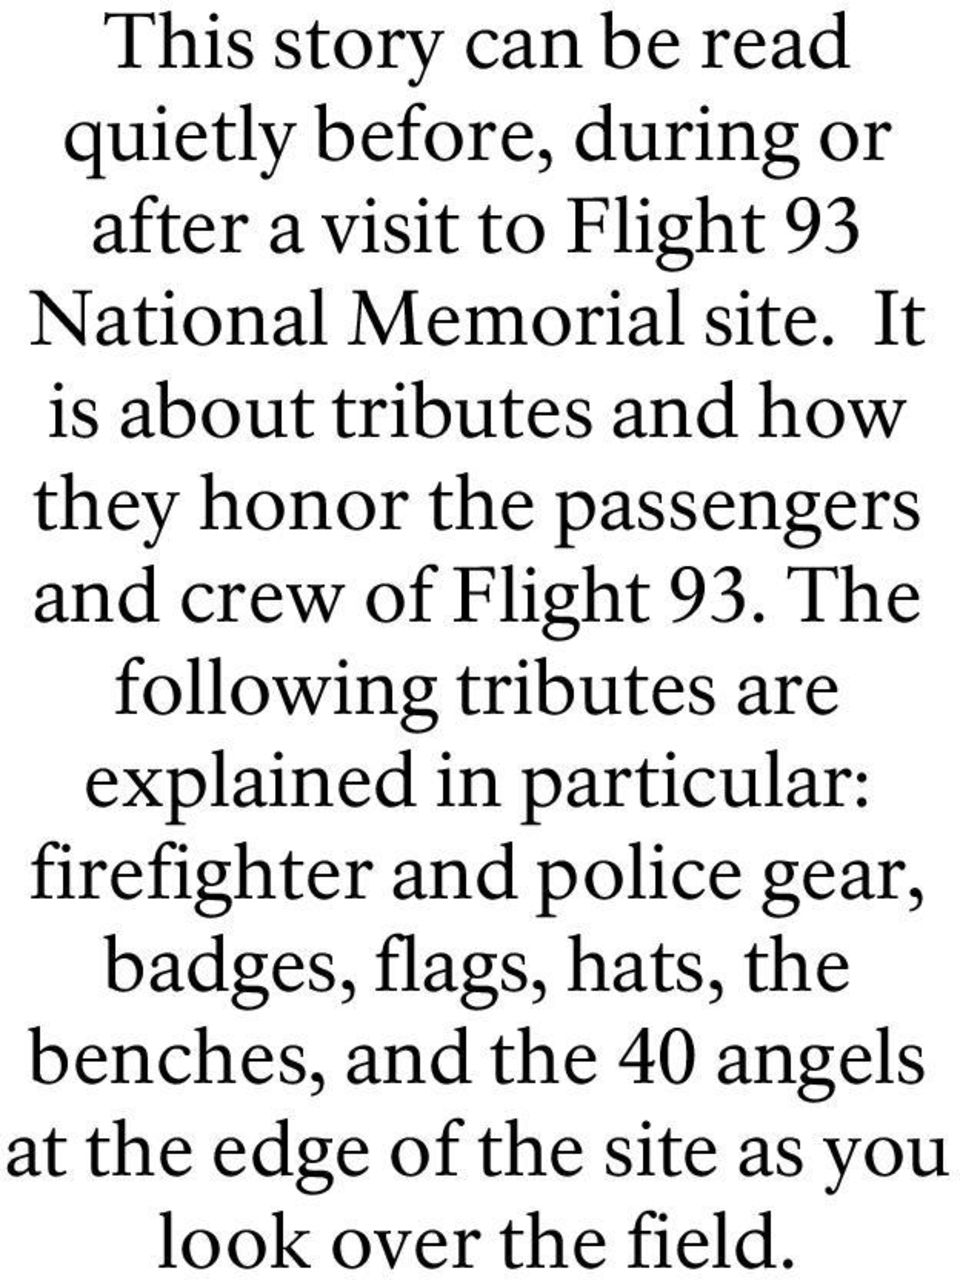 It is about tributes and how they honor the passengers and crew of Flight 93.